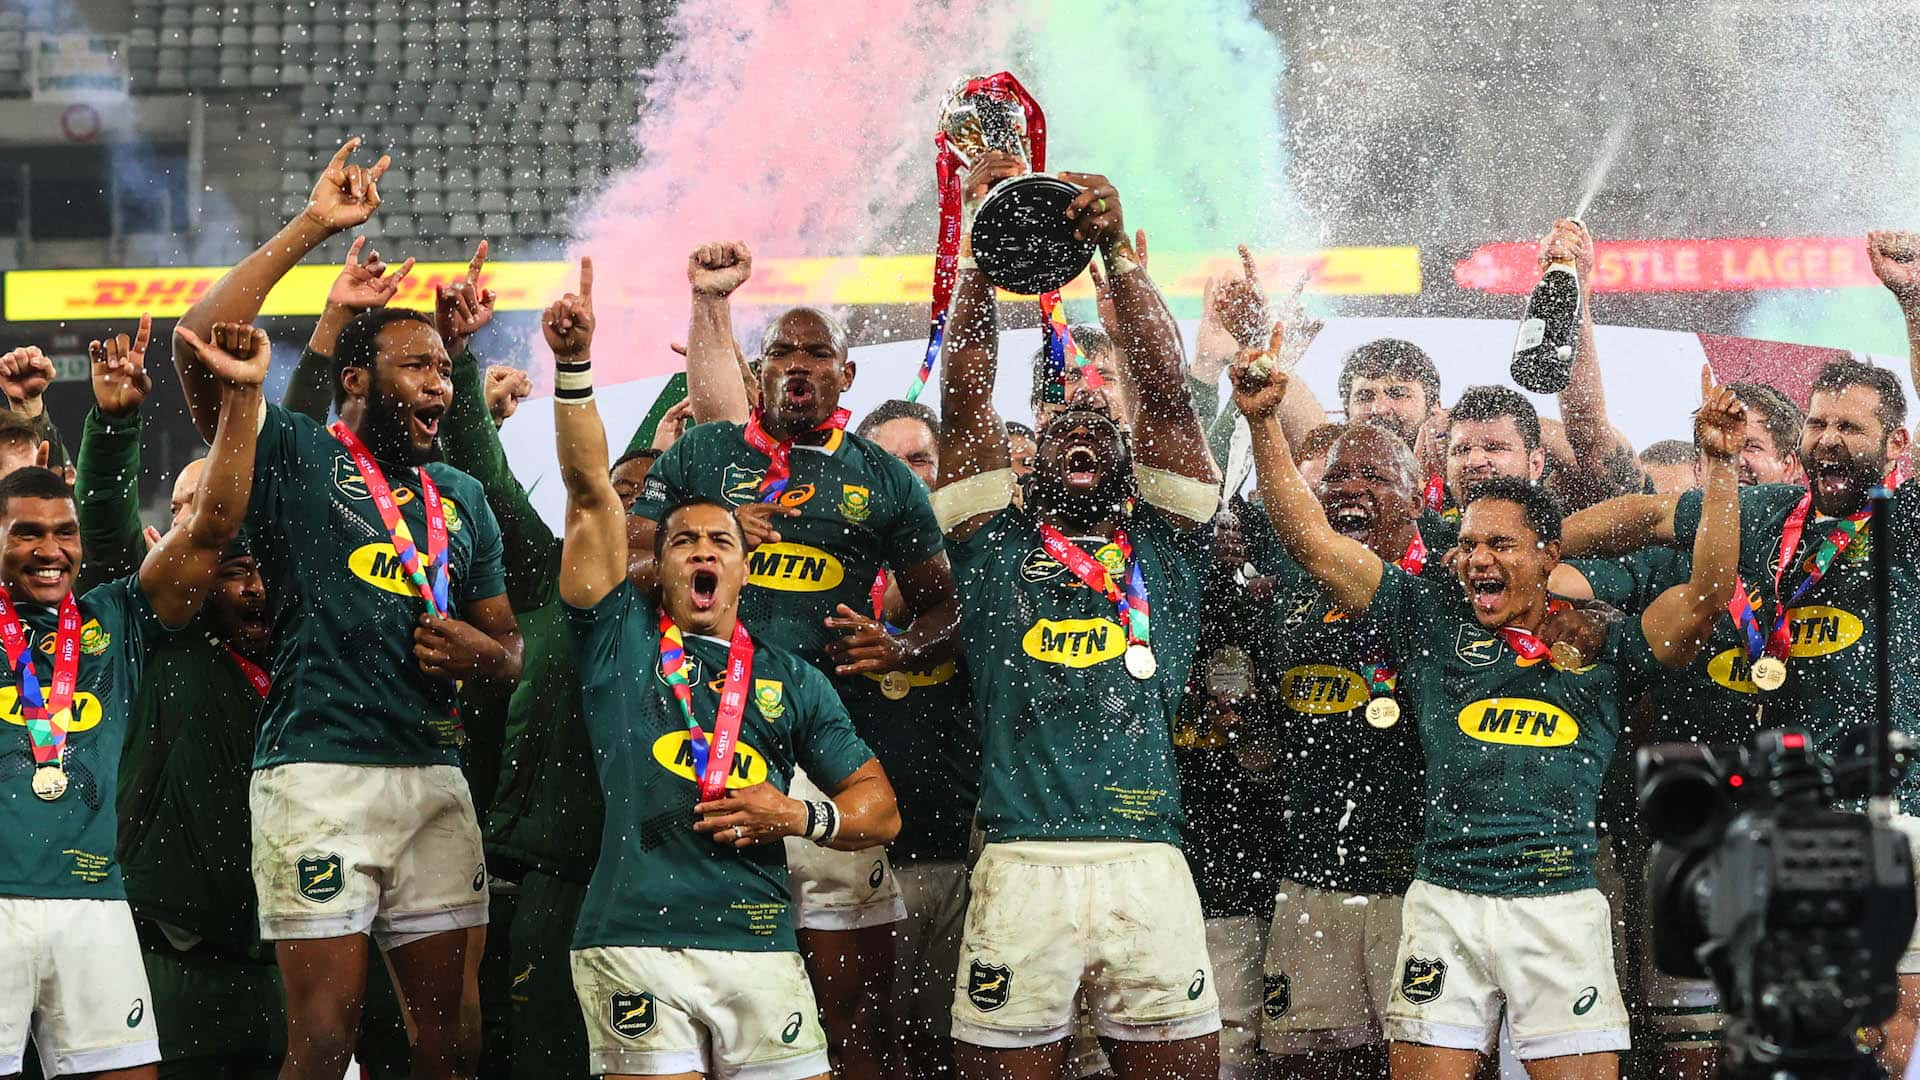 The South Africa team celebrate winning the Castle Lager Lions Series Trophy